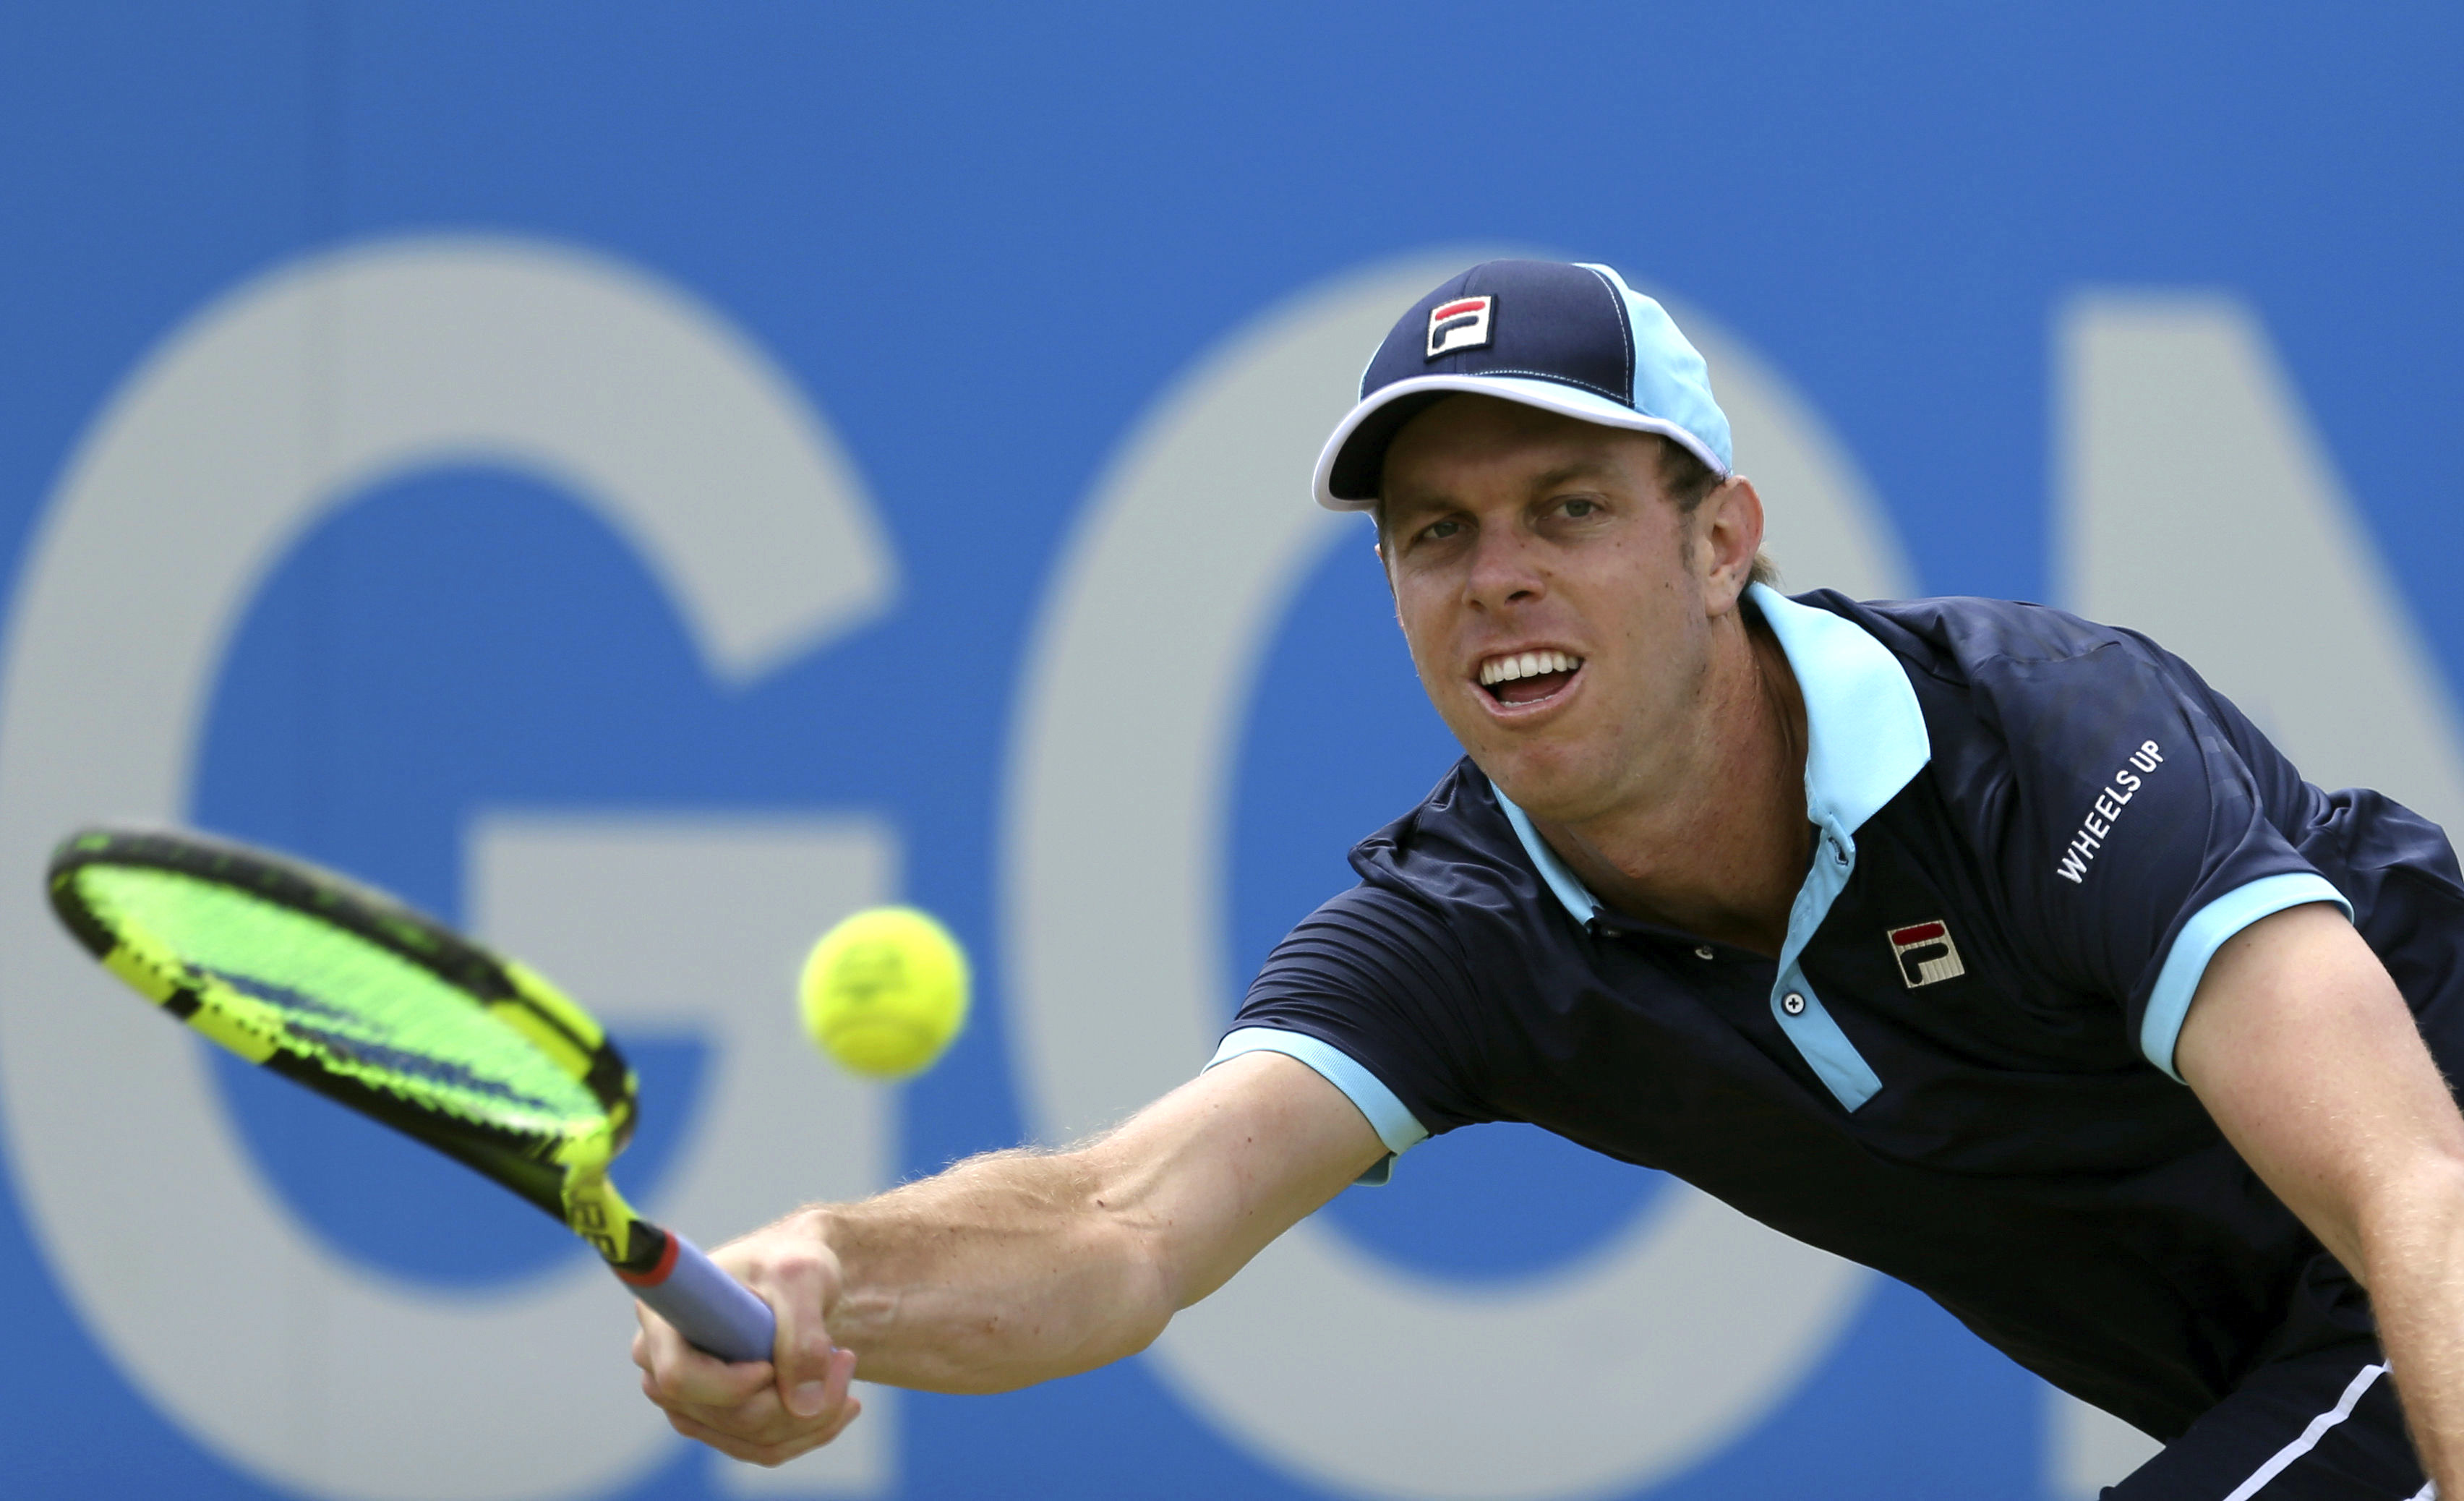 Sam Querrey of the United States returns a ball,  during his match against Luxembourg's Gilles Muller, on day five of the Queen's Club tennis tournament in London, Friday June 23, 2017. (Steven Paston/PA via AP)